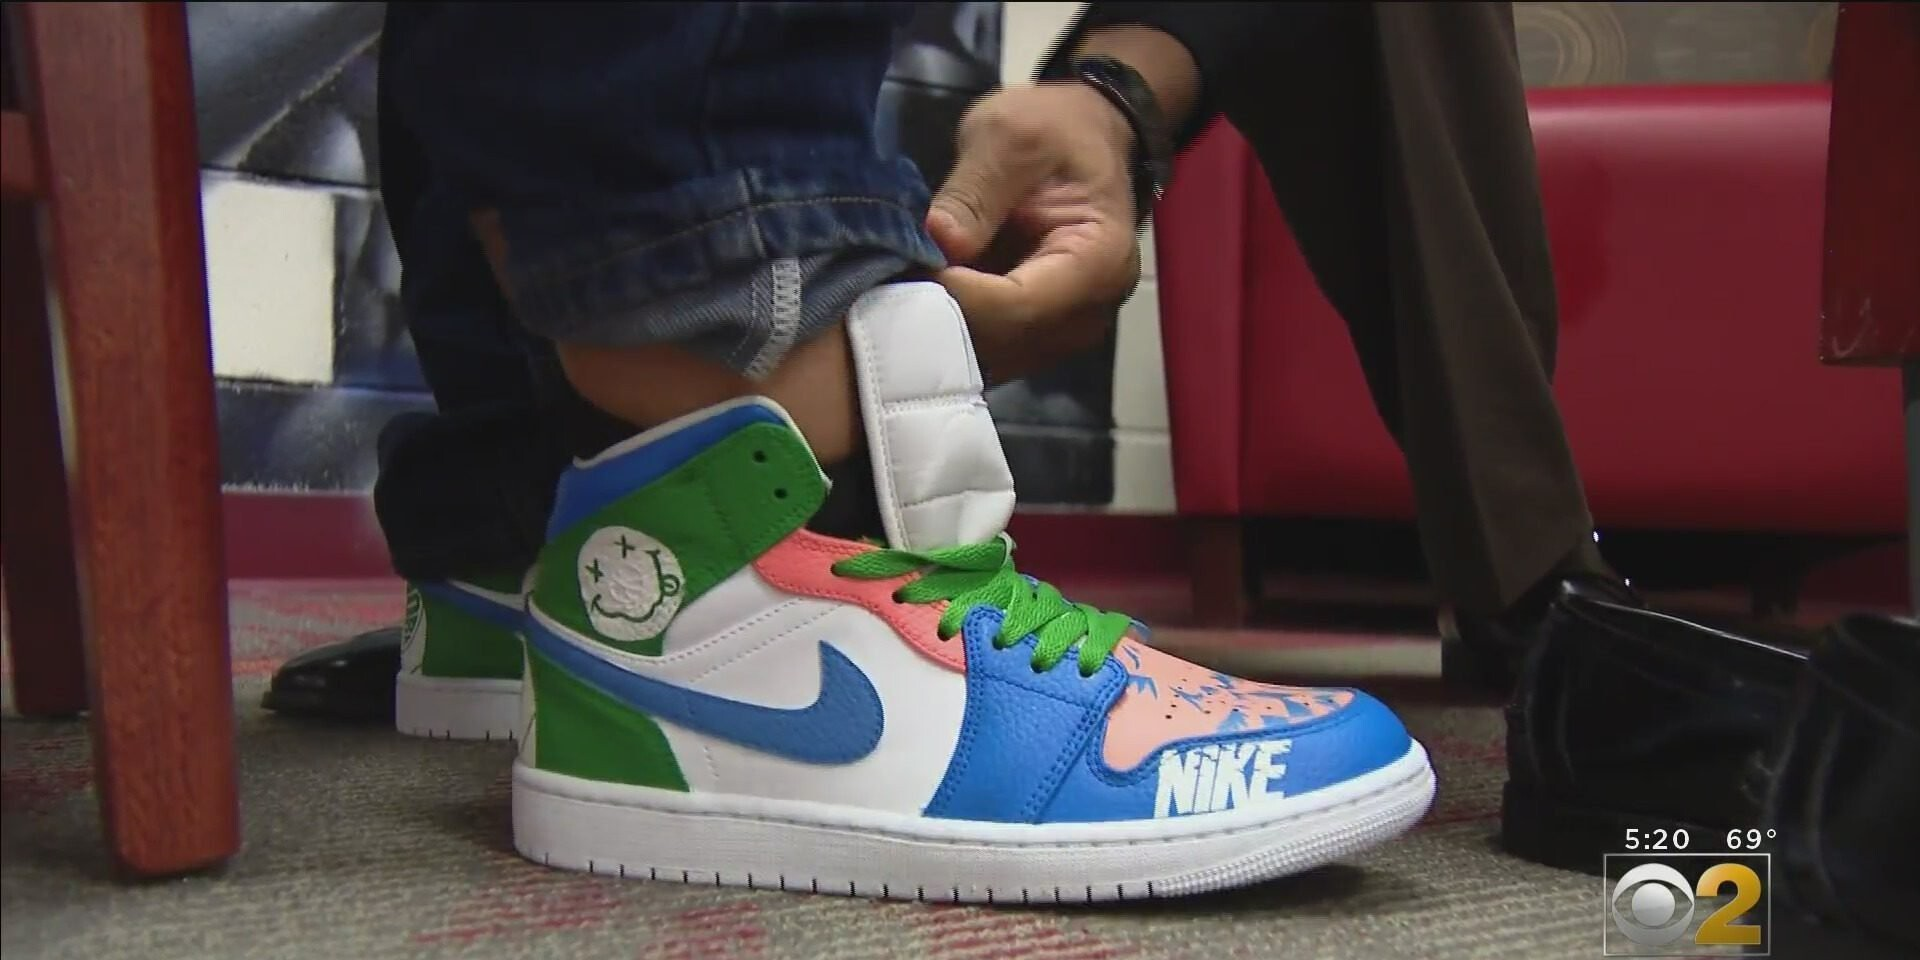 <i>WBBM</i><br/>A Chicago teacher found a way to reward his students with new sneakers that he hand painted after they designed them.